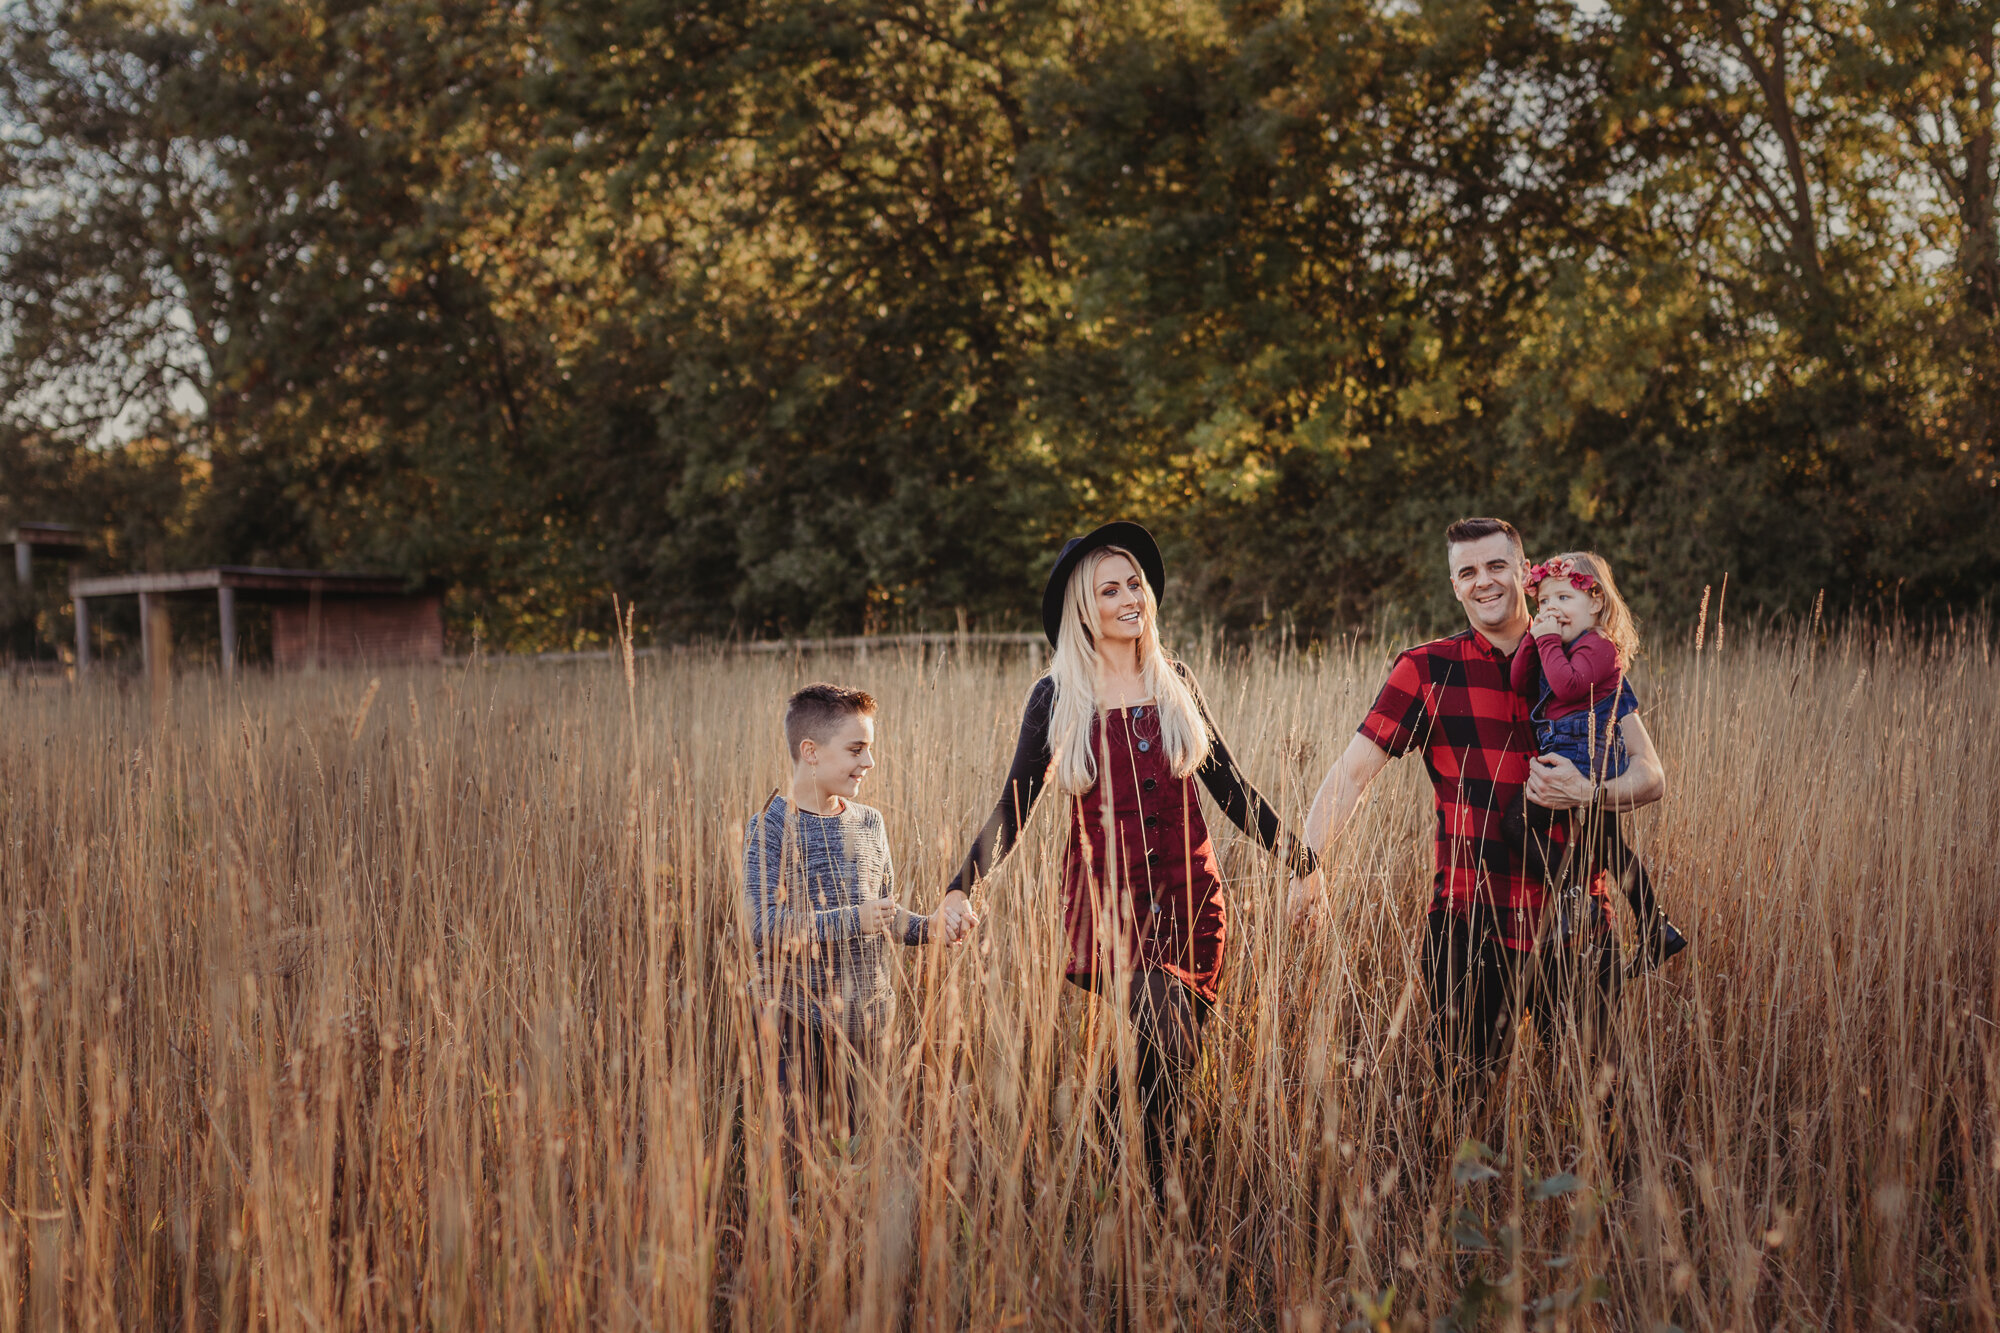 non-traditional portrait photographer family photographer lifestyle photographer wedding photographer engagement photographer yorkshire u.k. creative outdoor location portrait photography North Yorkshire leeds ripon york